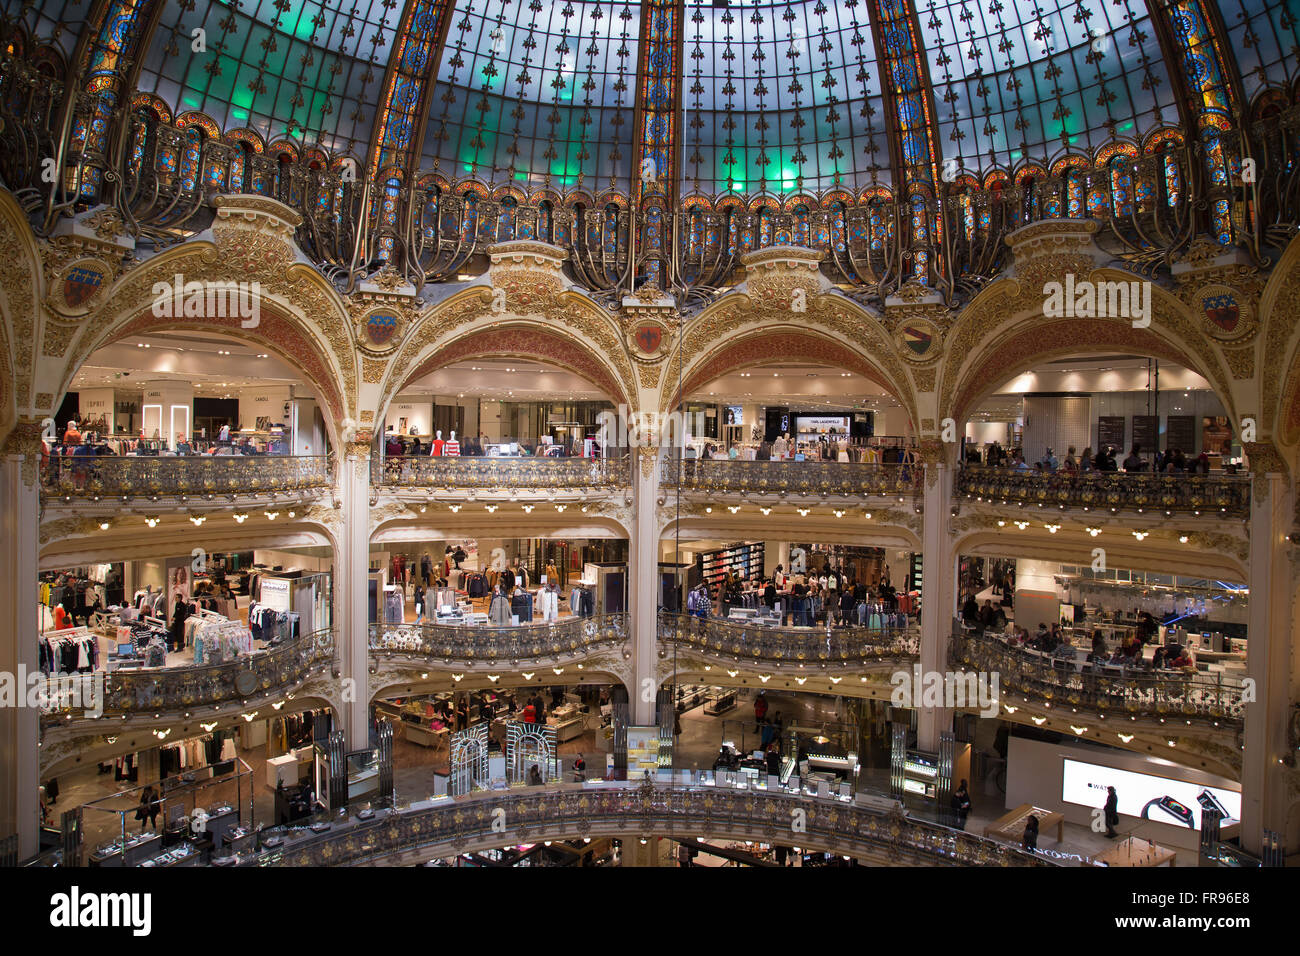 Inside the Galeries Lafayette in Paris France in winter - Stock Image